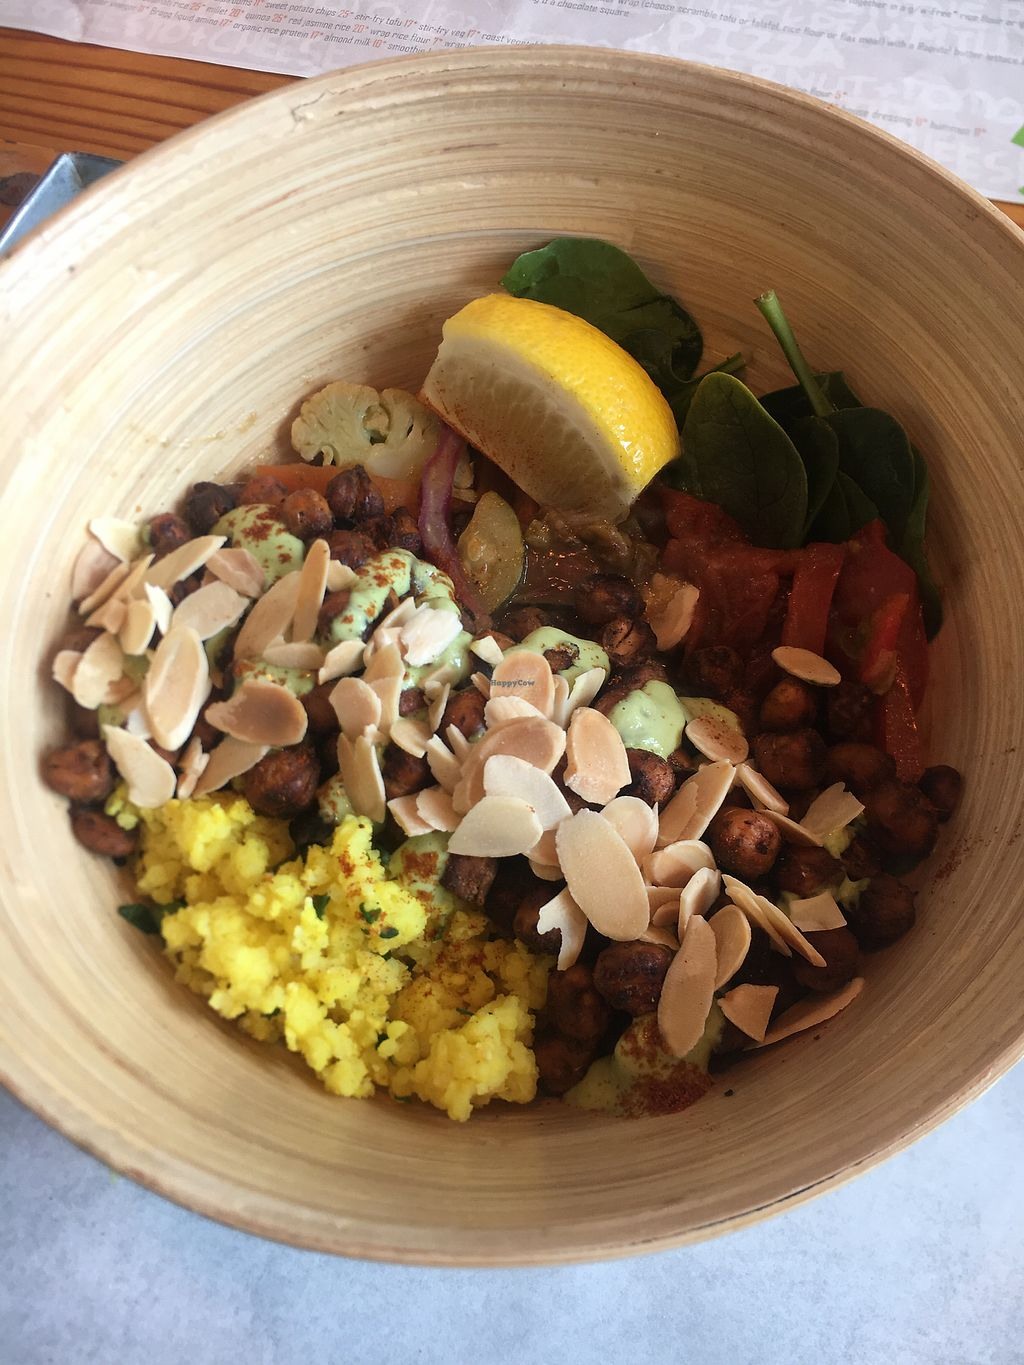 """Photo of Free Food  by <a href=""""/members/profile/reesebergeron"""">reesebergeron</a> <br/>millet and chickpea bamboo bowl ❤️ <br/> August 30, 2017  - <a href='/contact/abuse/image/46490/298873'>Report</a>"""